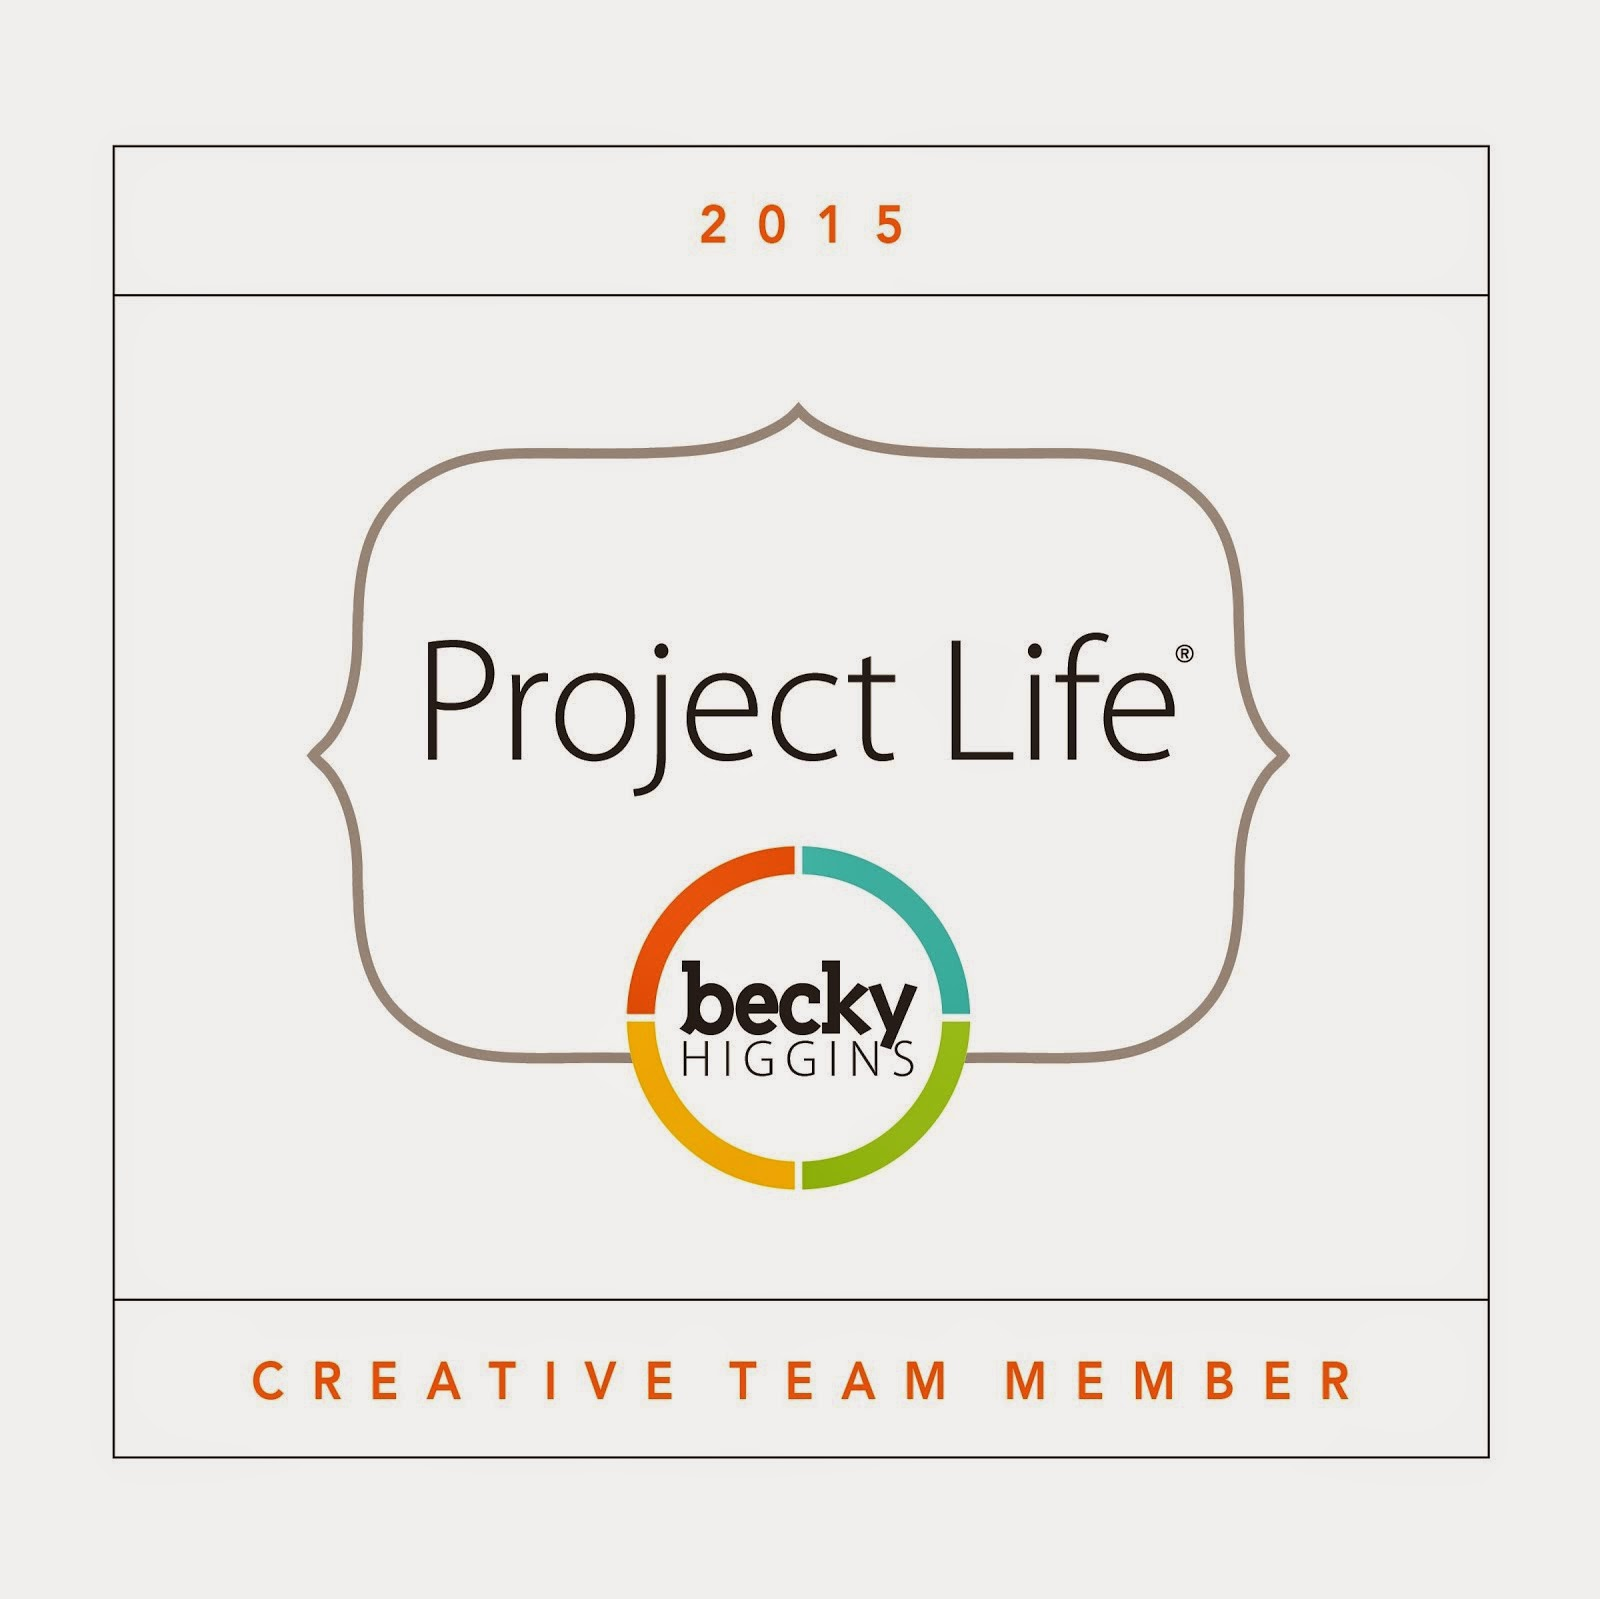 I am a Project Life Creative Team Member